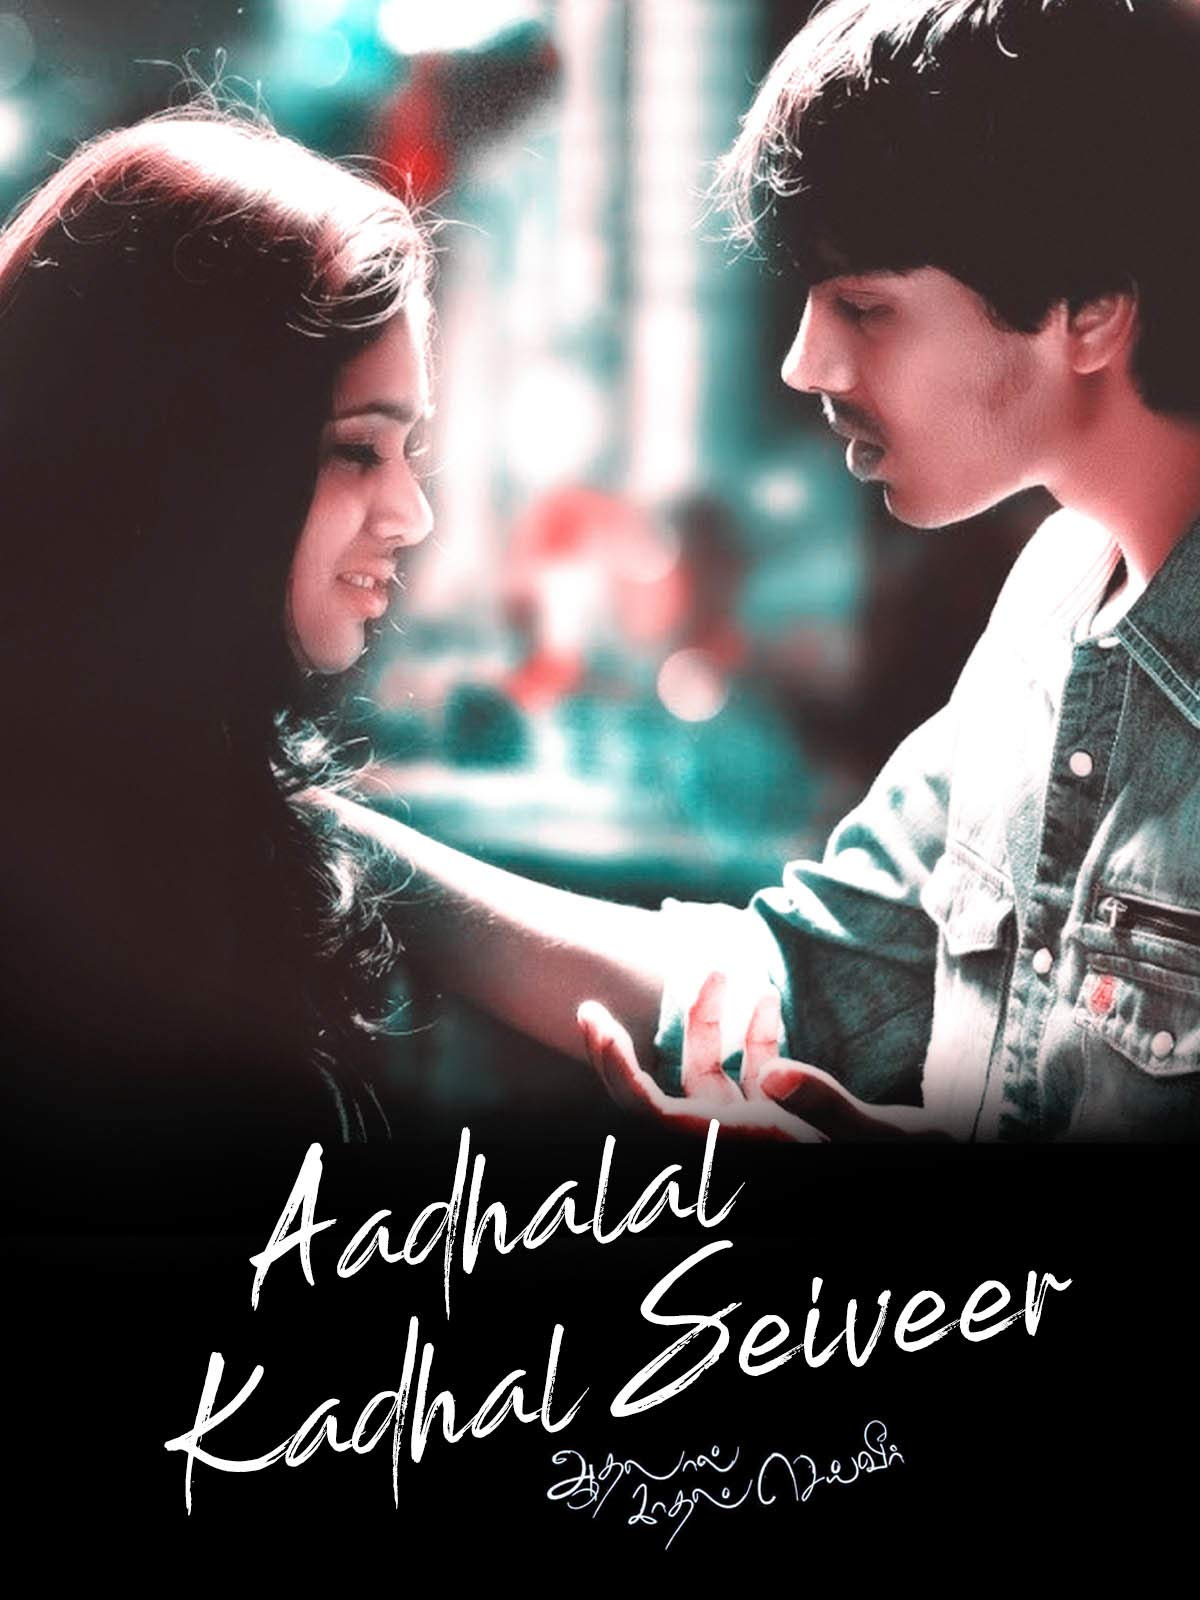 Aadhalal Kadhal Seiveer on Amazon Prime Video UK